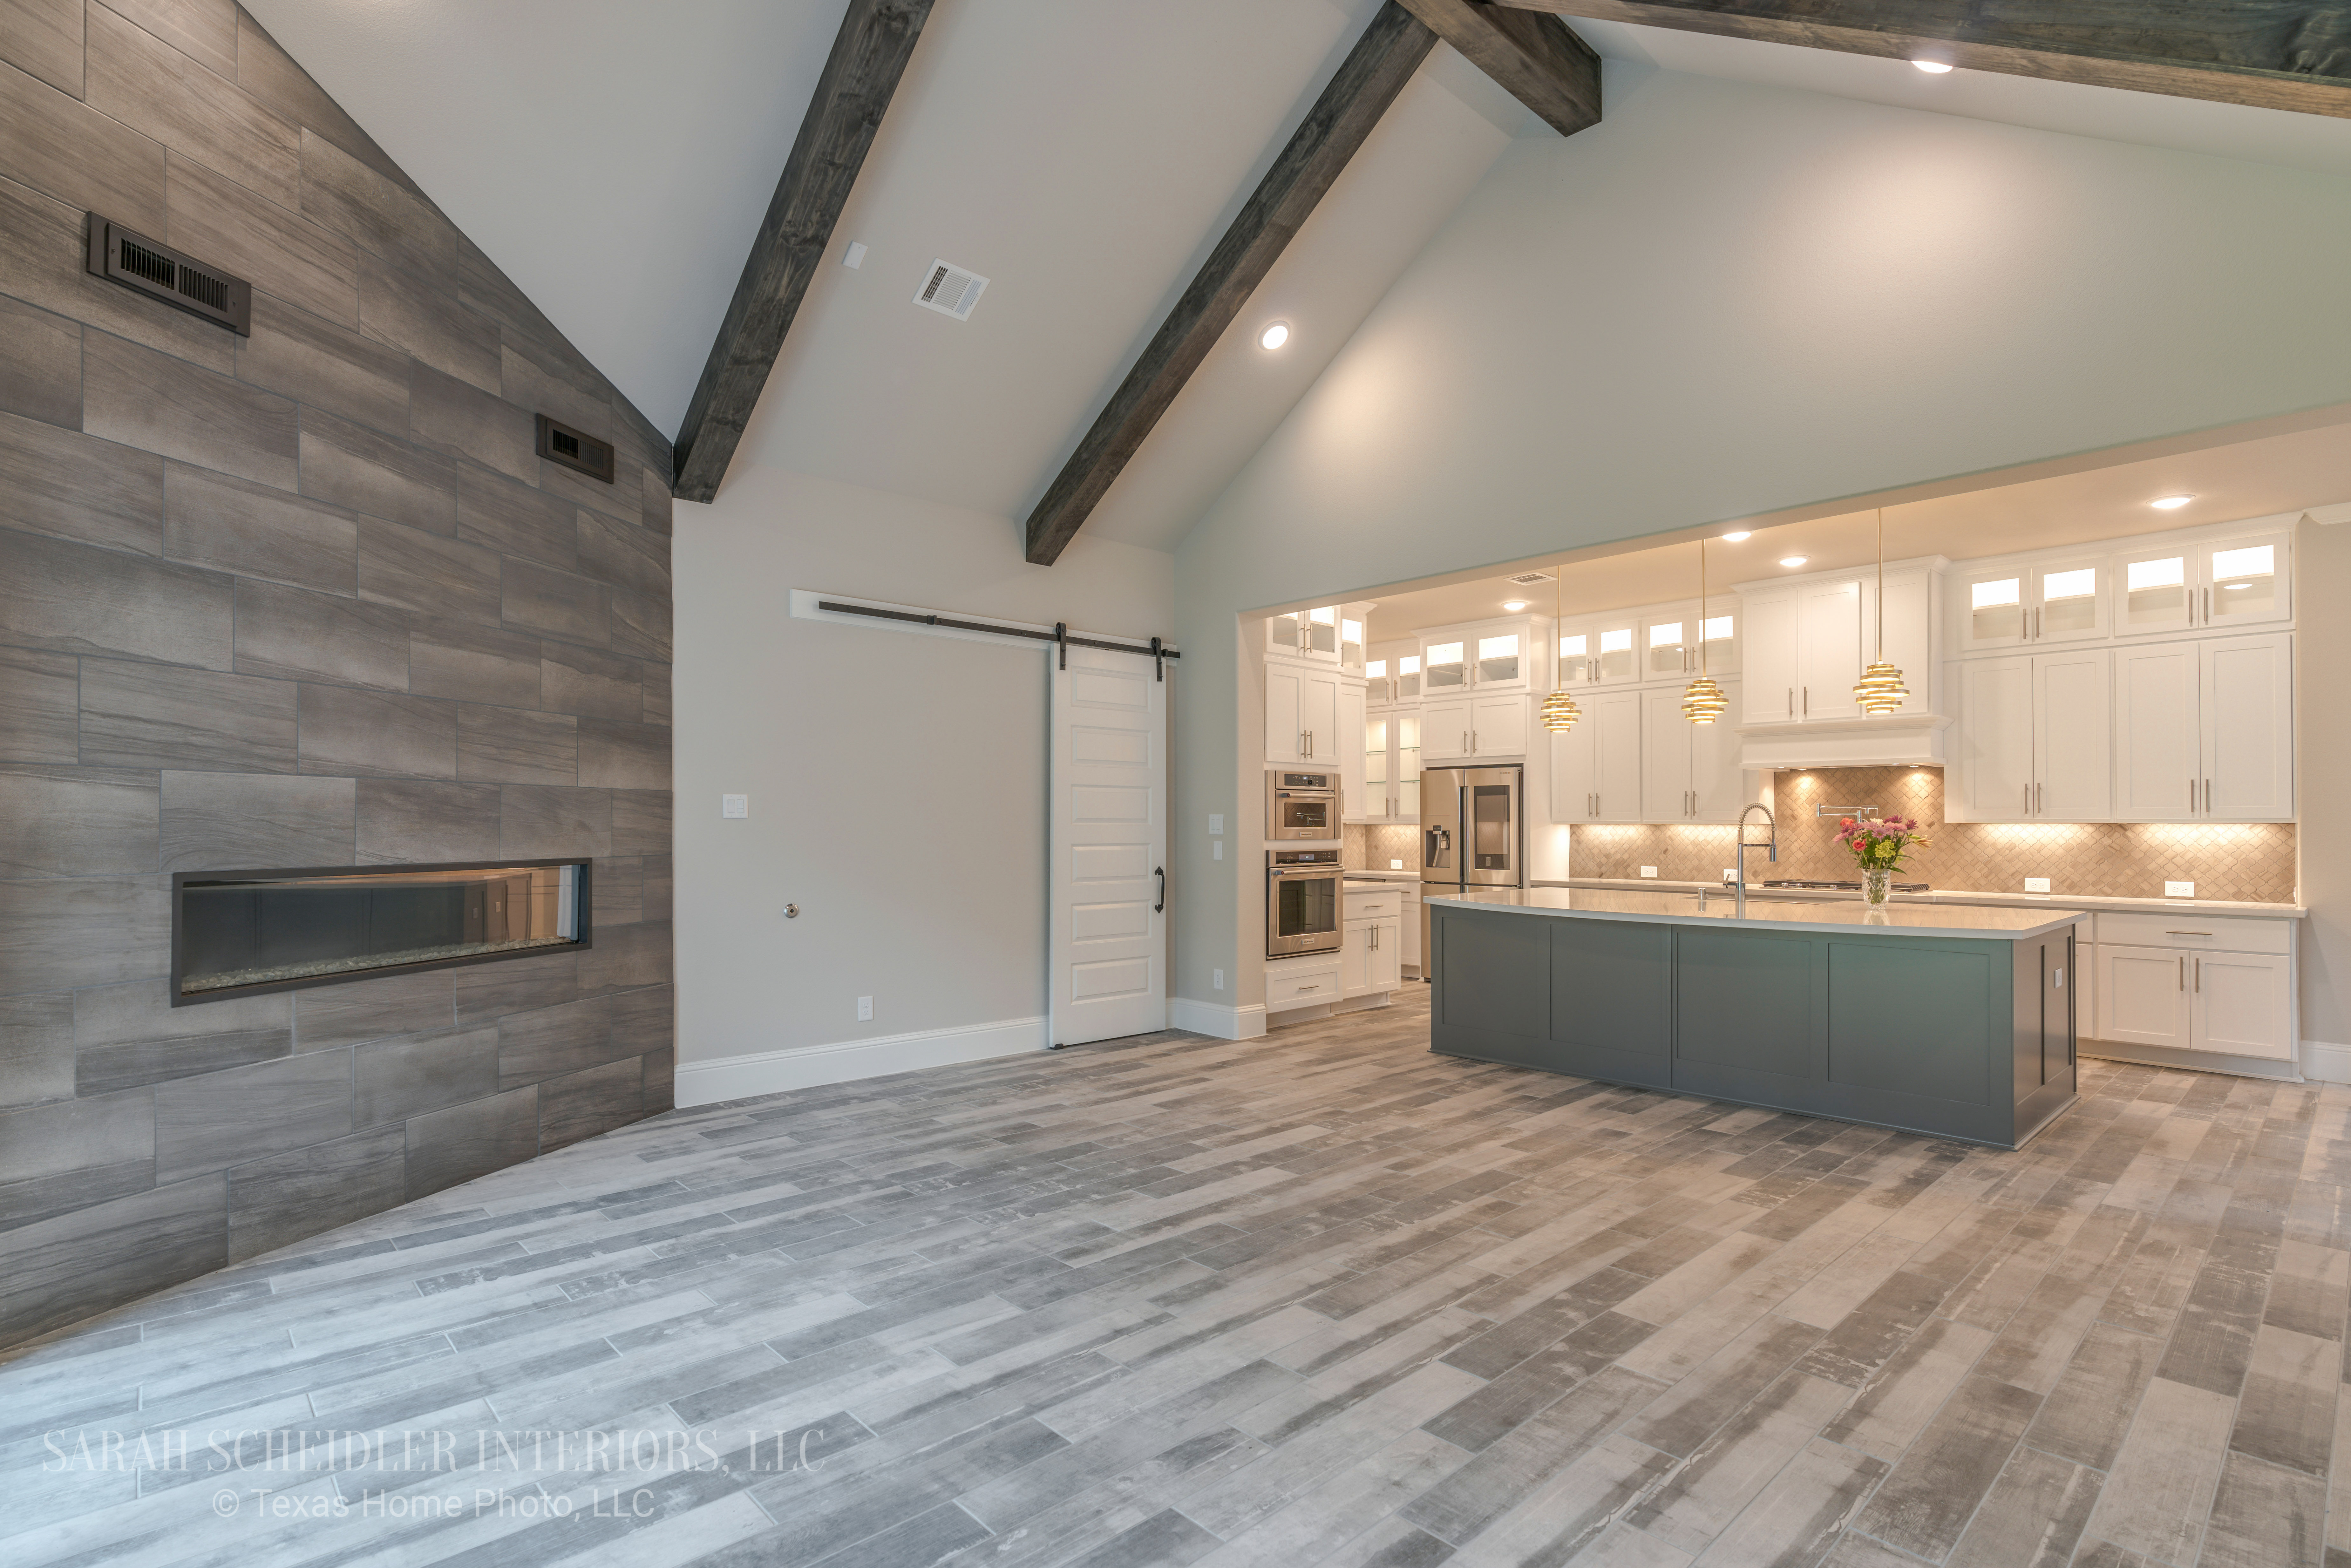 Rustic Glam Open-Concept Living Room and Kitchen with White Cabinets, Grey Island, Modern Pendant Lighting, Barn Door, Wood-Beam Ceiling, and Fireplace Wall